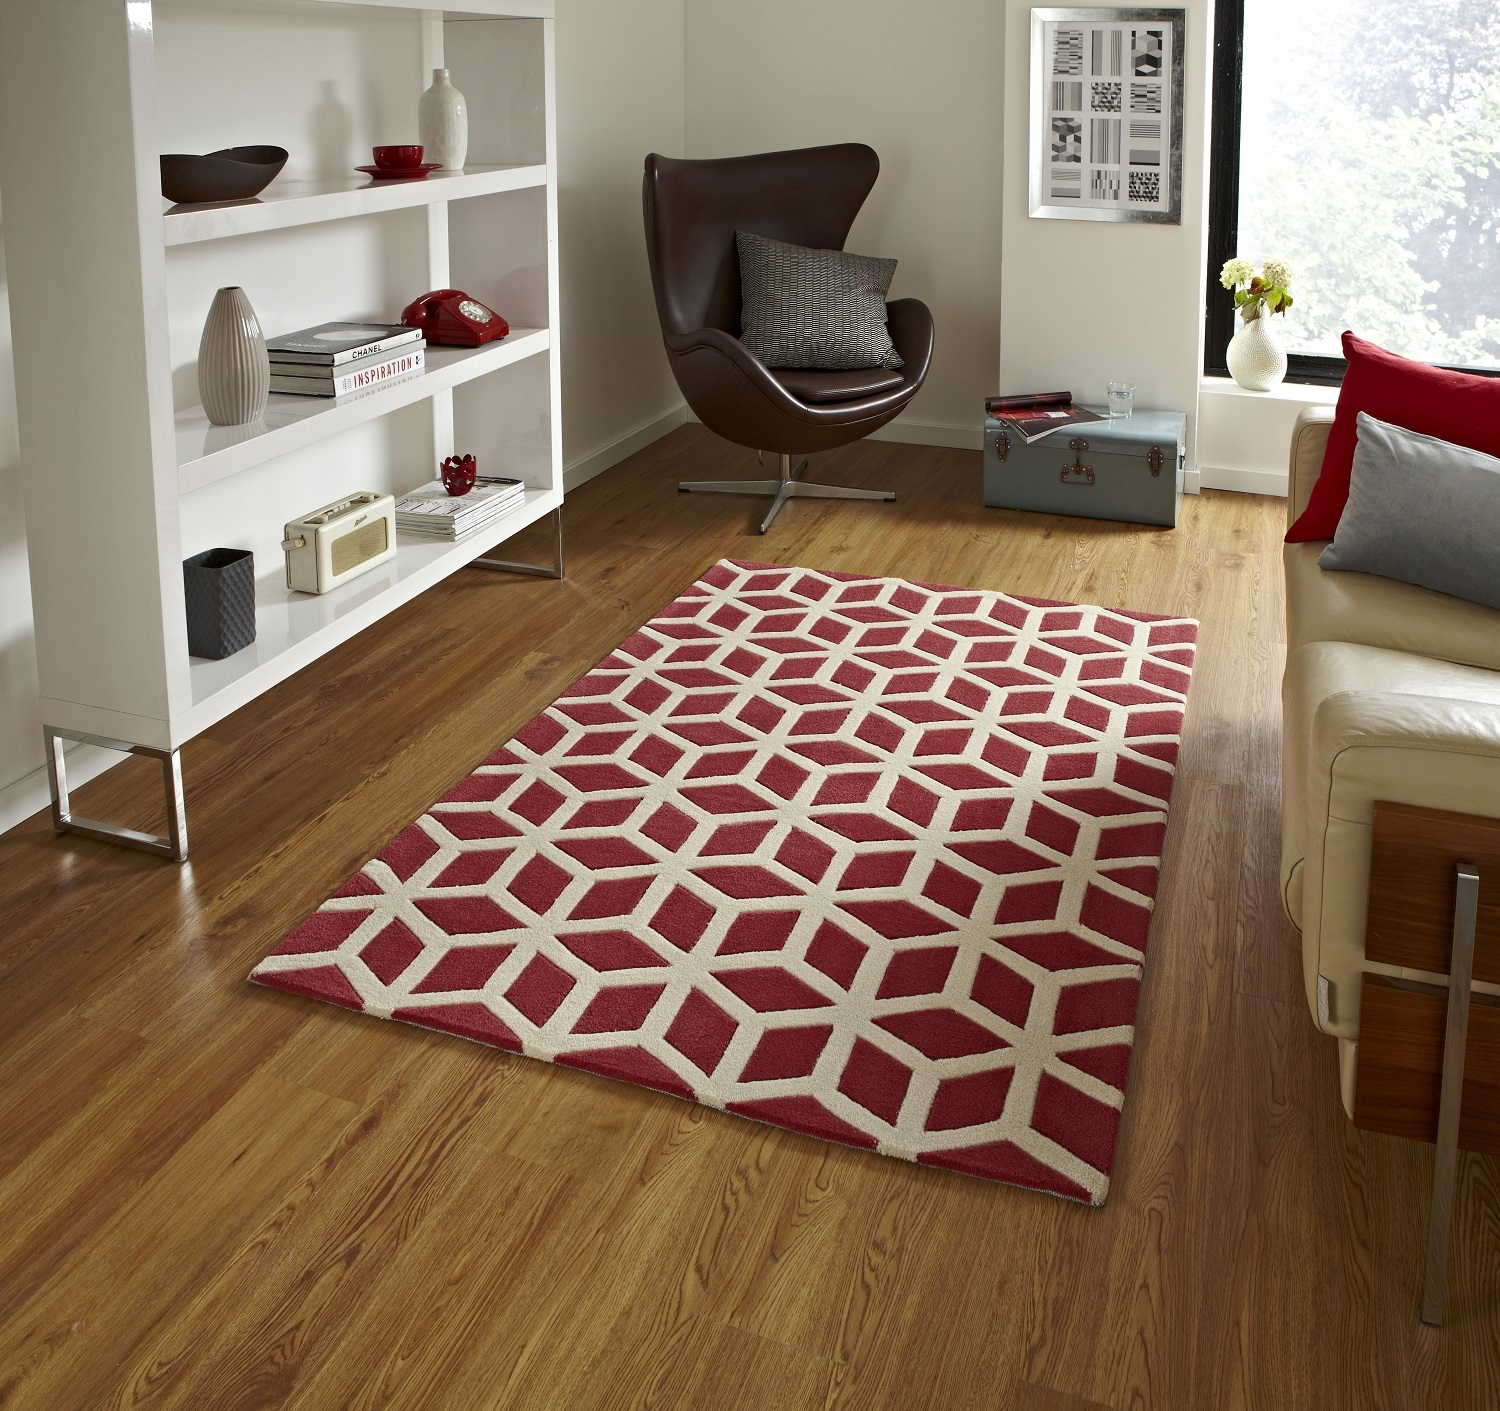 Modern Floor Rug Roselawnlutheran With Regard To Large Floor Rugs (Image 8 of 15)